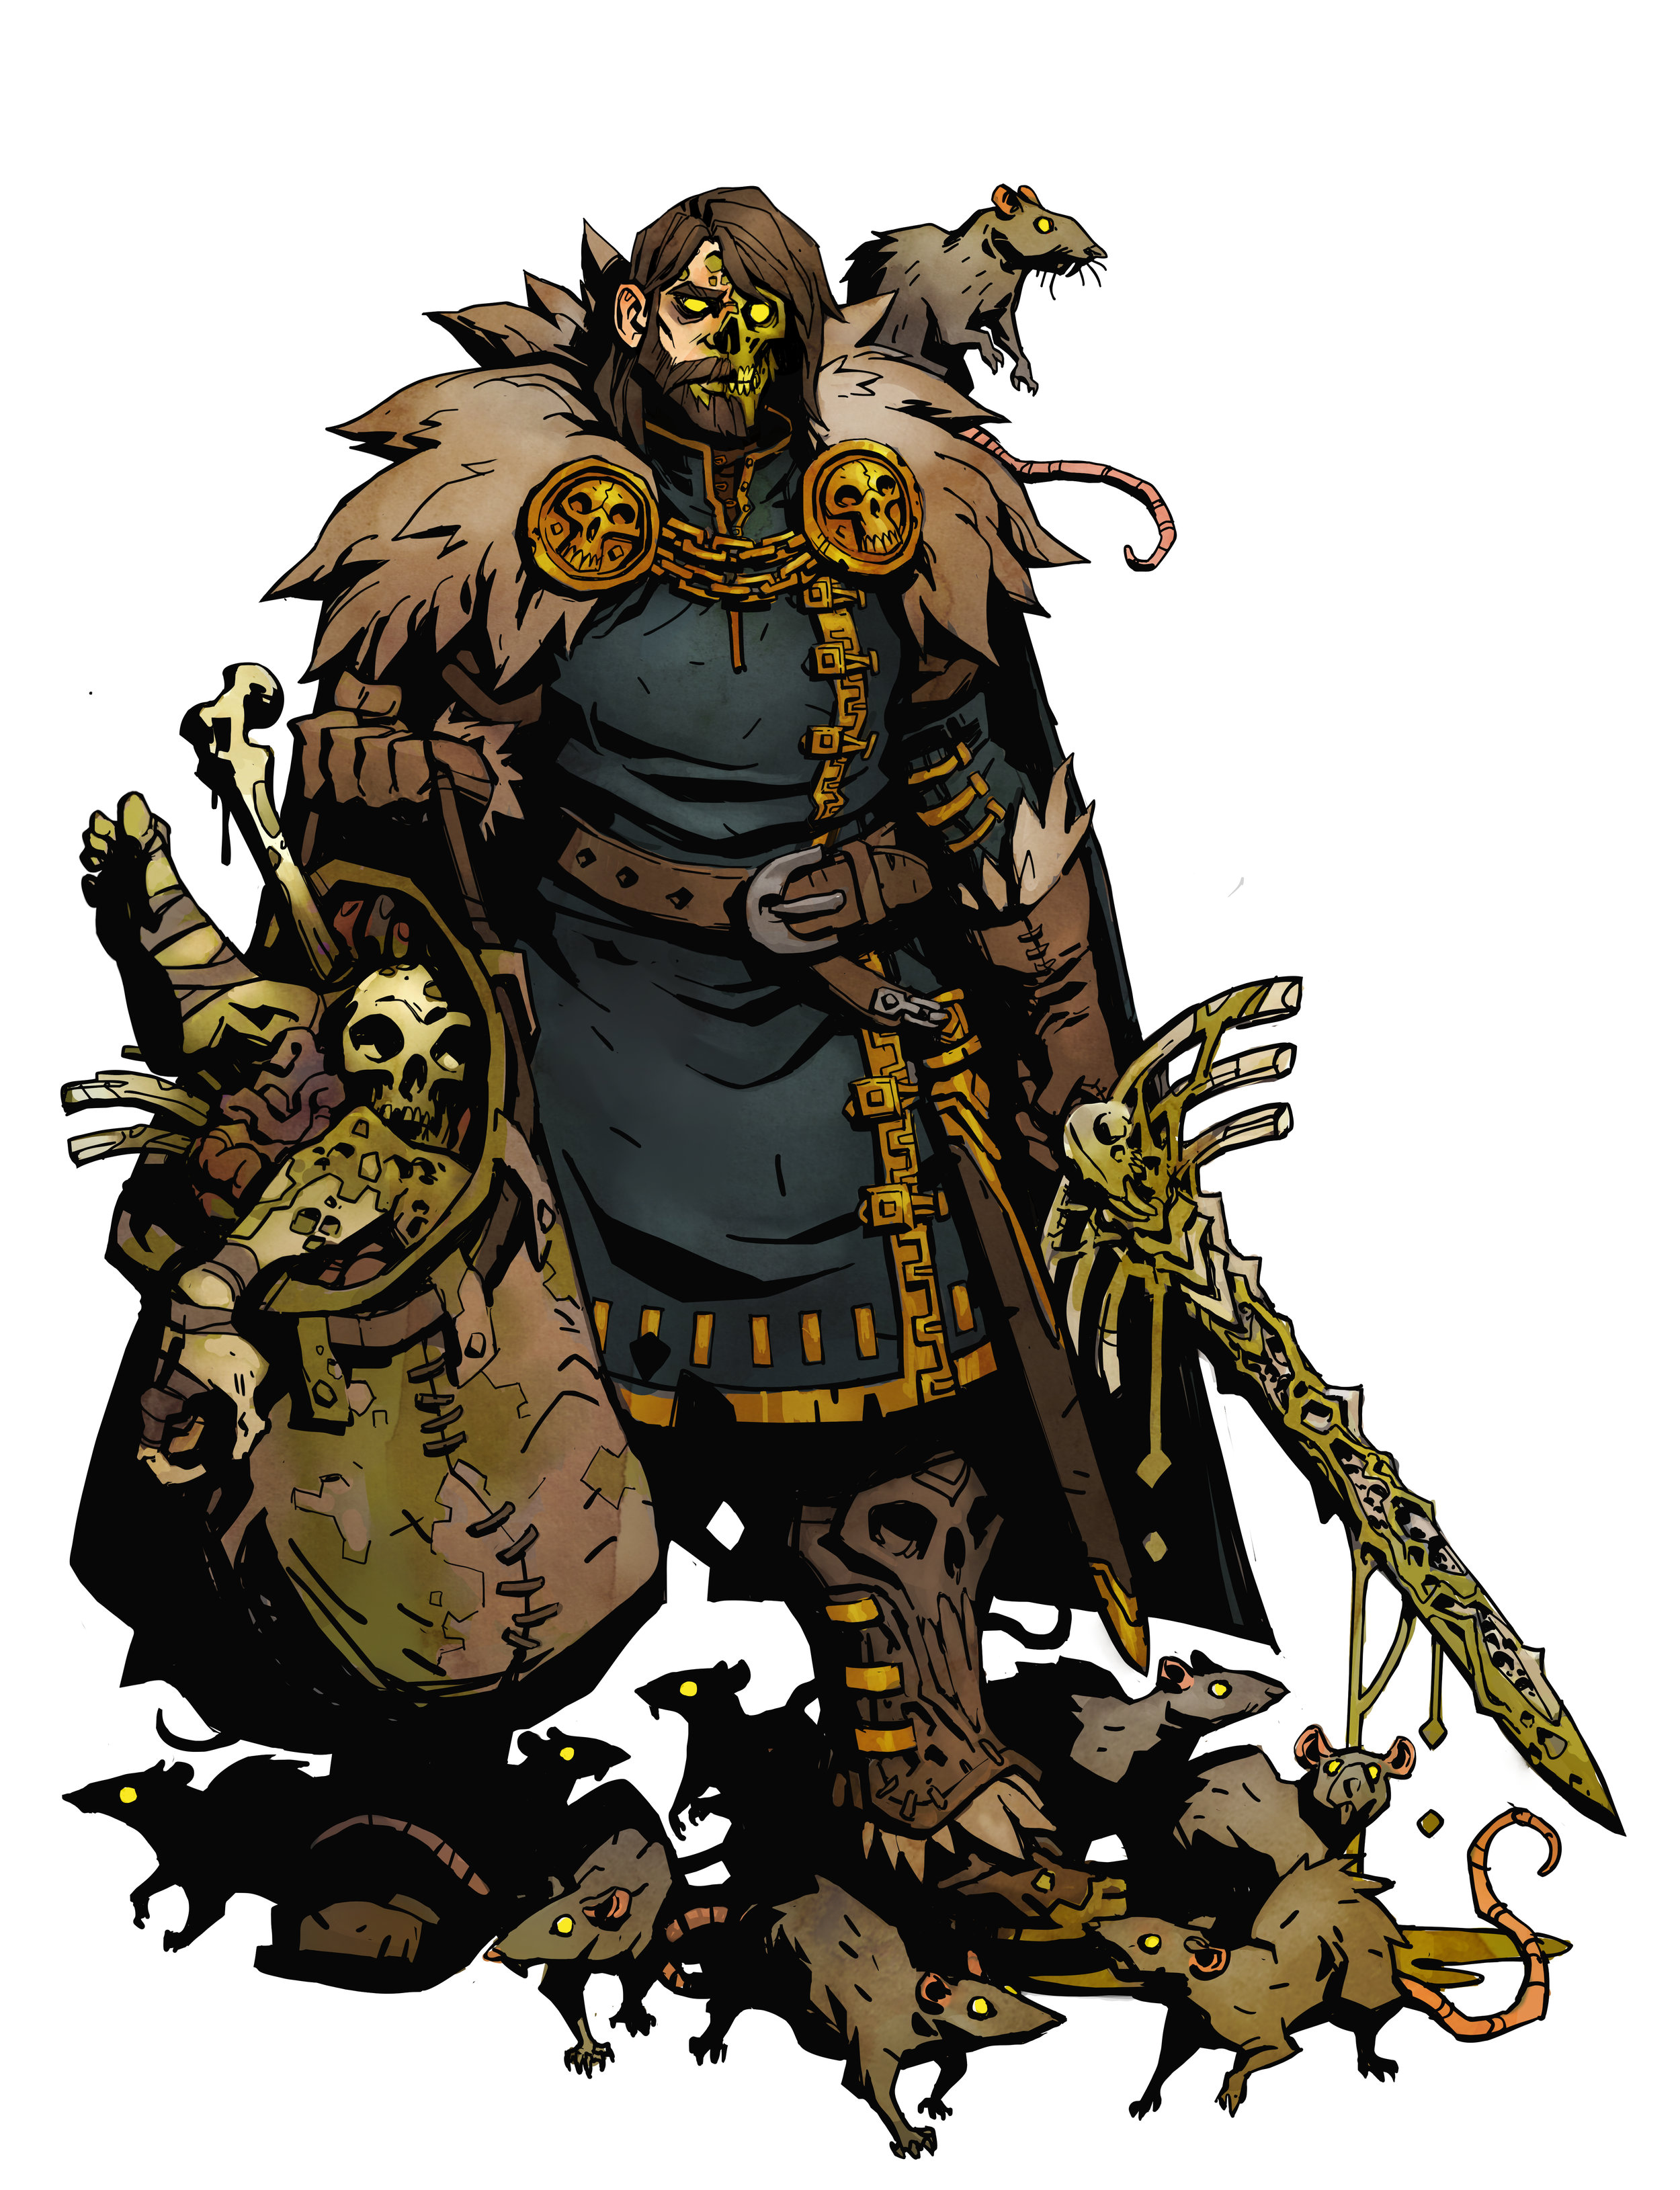 PLAGUE BARON FAQ - Q: The Plague Corpse Parts Last 4 Turns… How is that calculated?A: They disappear after 4 total turns, meaning your turn, opponent's turn, your turn, opponent's turn, then they are gone.Q: Do Corpse Parts disappear after the Plague Baron dies?A: Yes.Q: Can I stack multiple Corpse Pox Tiles on 1 space?A: No. Only 1 Corpse Pox tile can be on 1 space. A Ghost Knight and/or Flames can also occupy the space, however. Don't get knocked onto that space, yeesh.